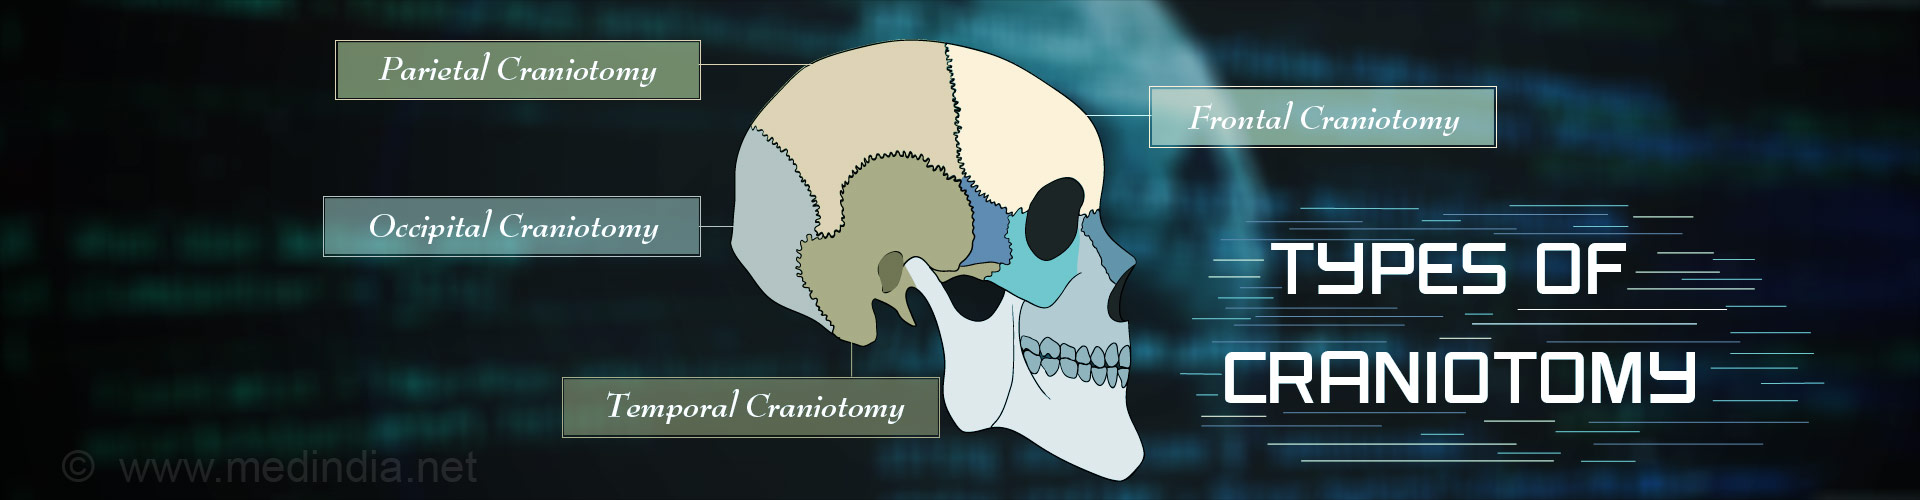 Craniotomy - Types, Indications, Procedure, Complications